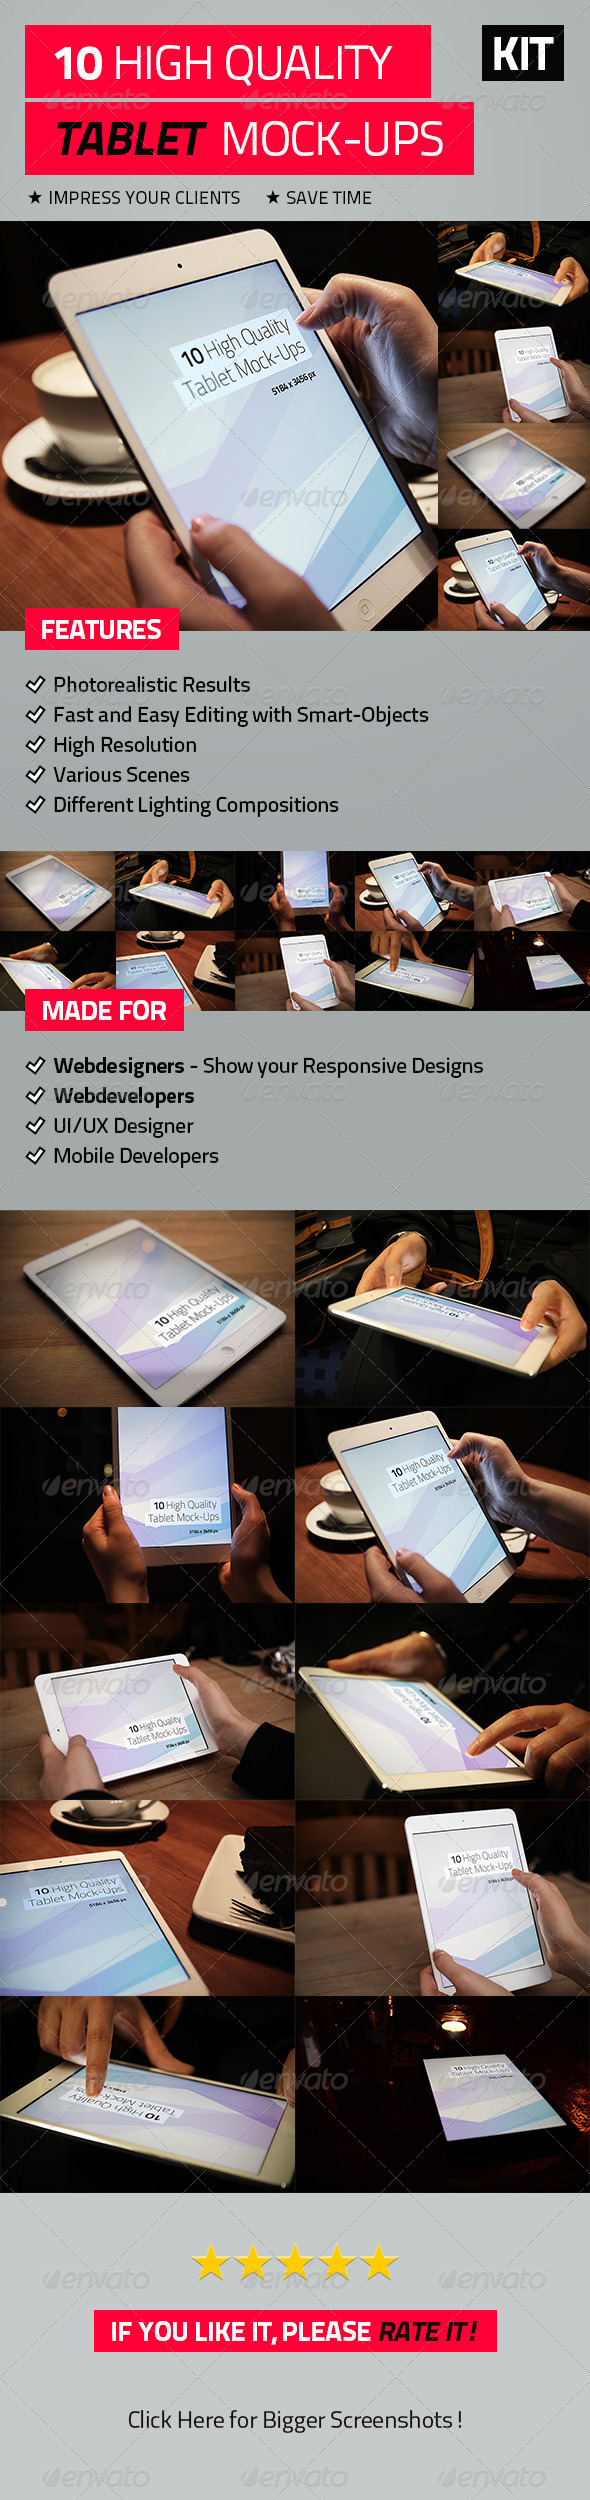 10 High Quality Tablet Mock-Ups - Mobile Displays